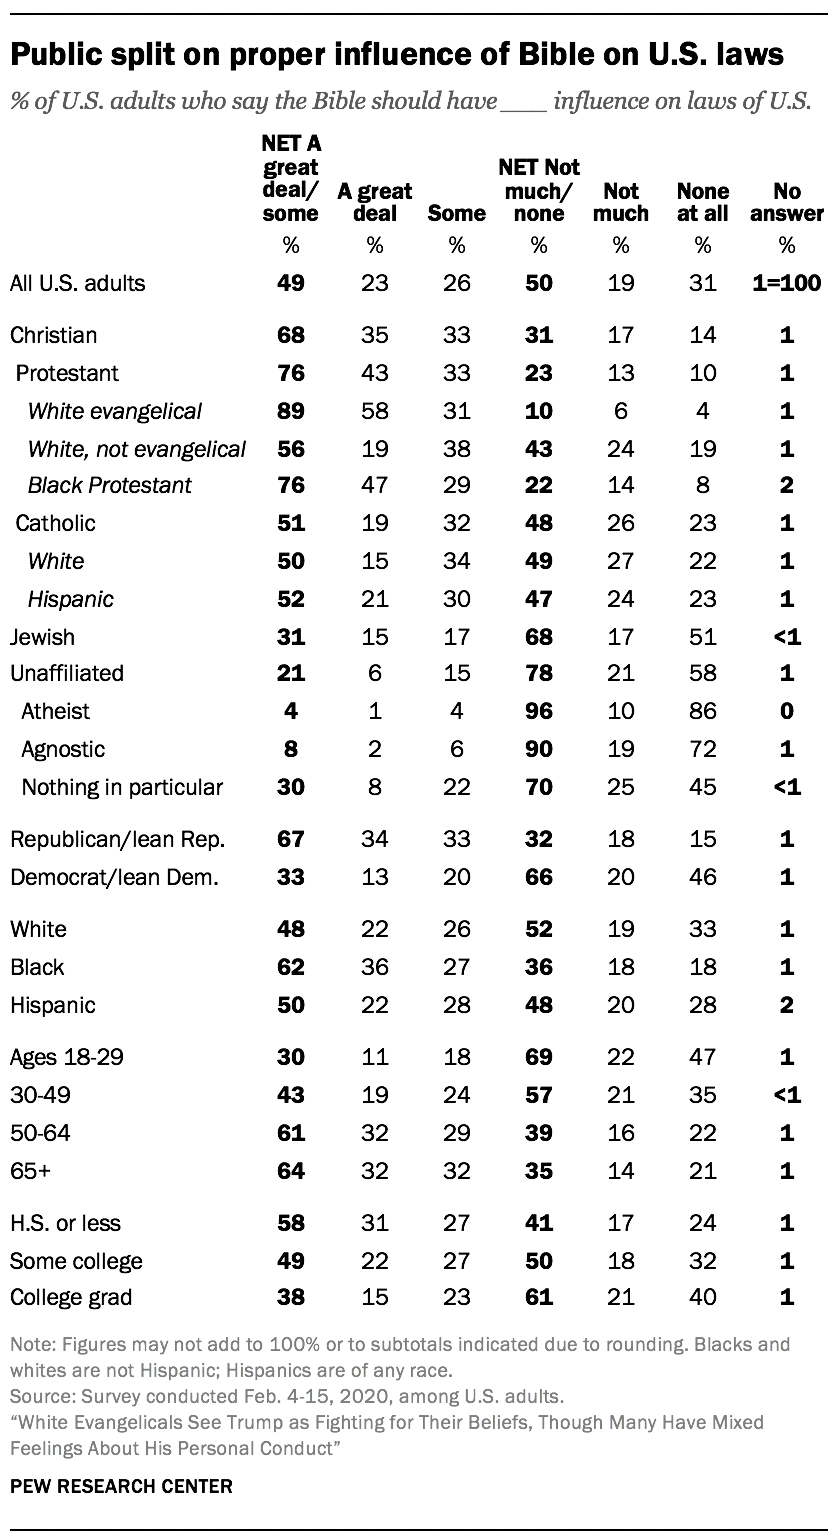 Public split on proper influence of Bible on U.S. laws